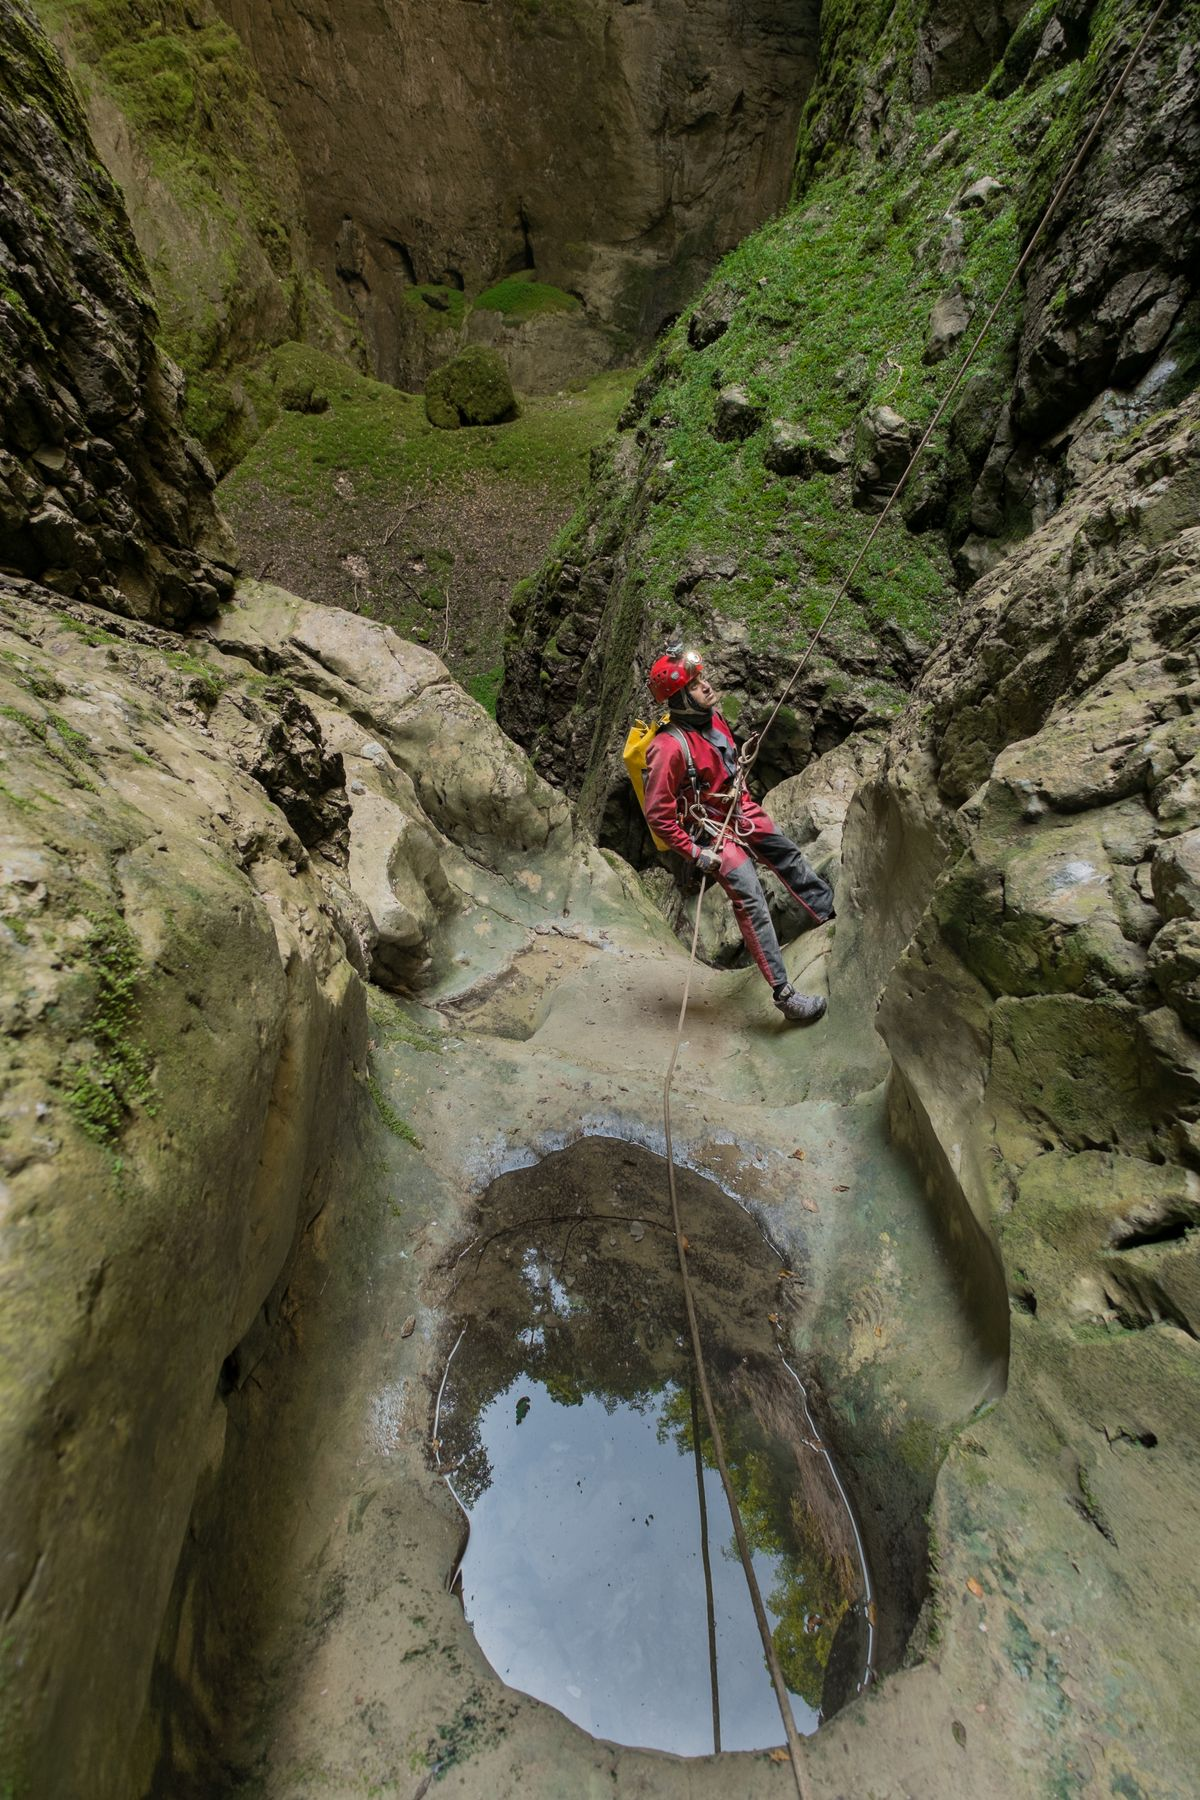 2015_07_24-31_3rd_cave-photomeeting_turkey_straub_DSCF0109-2